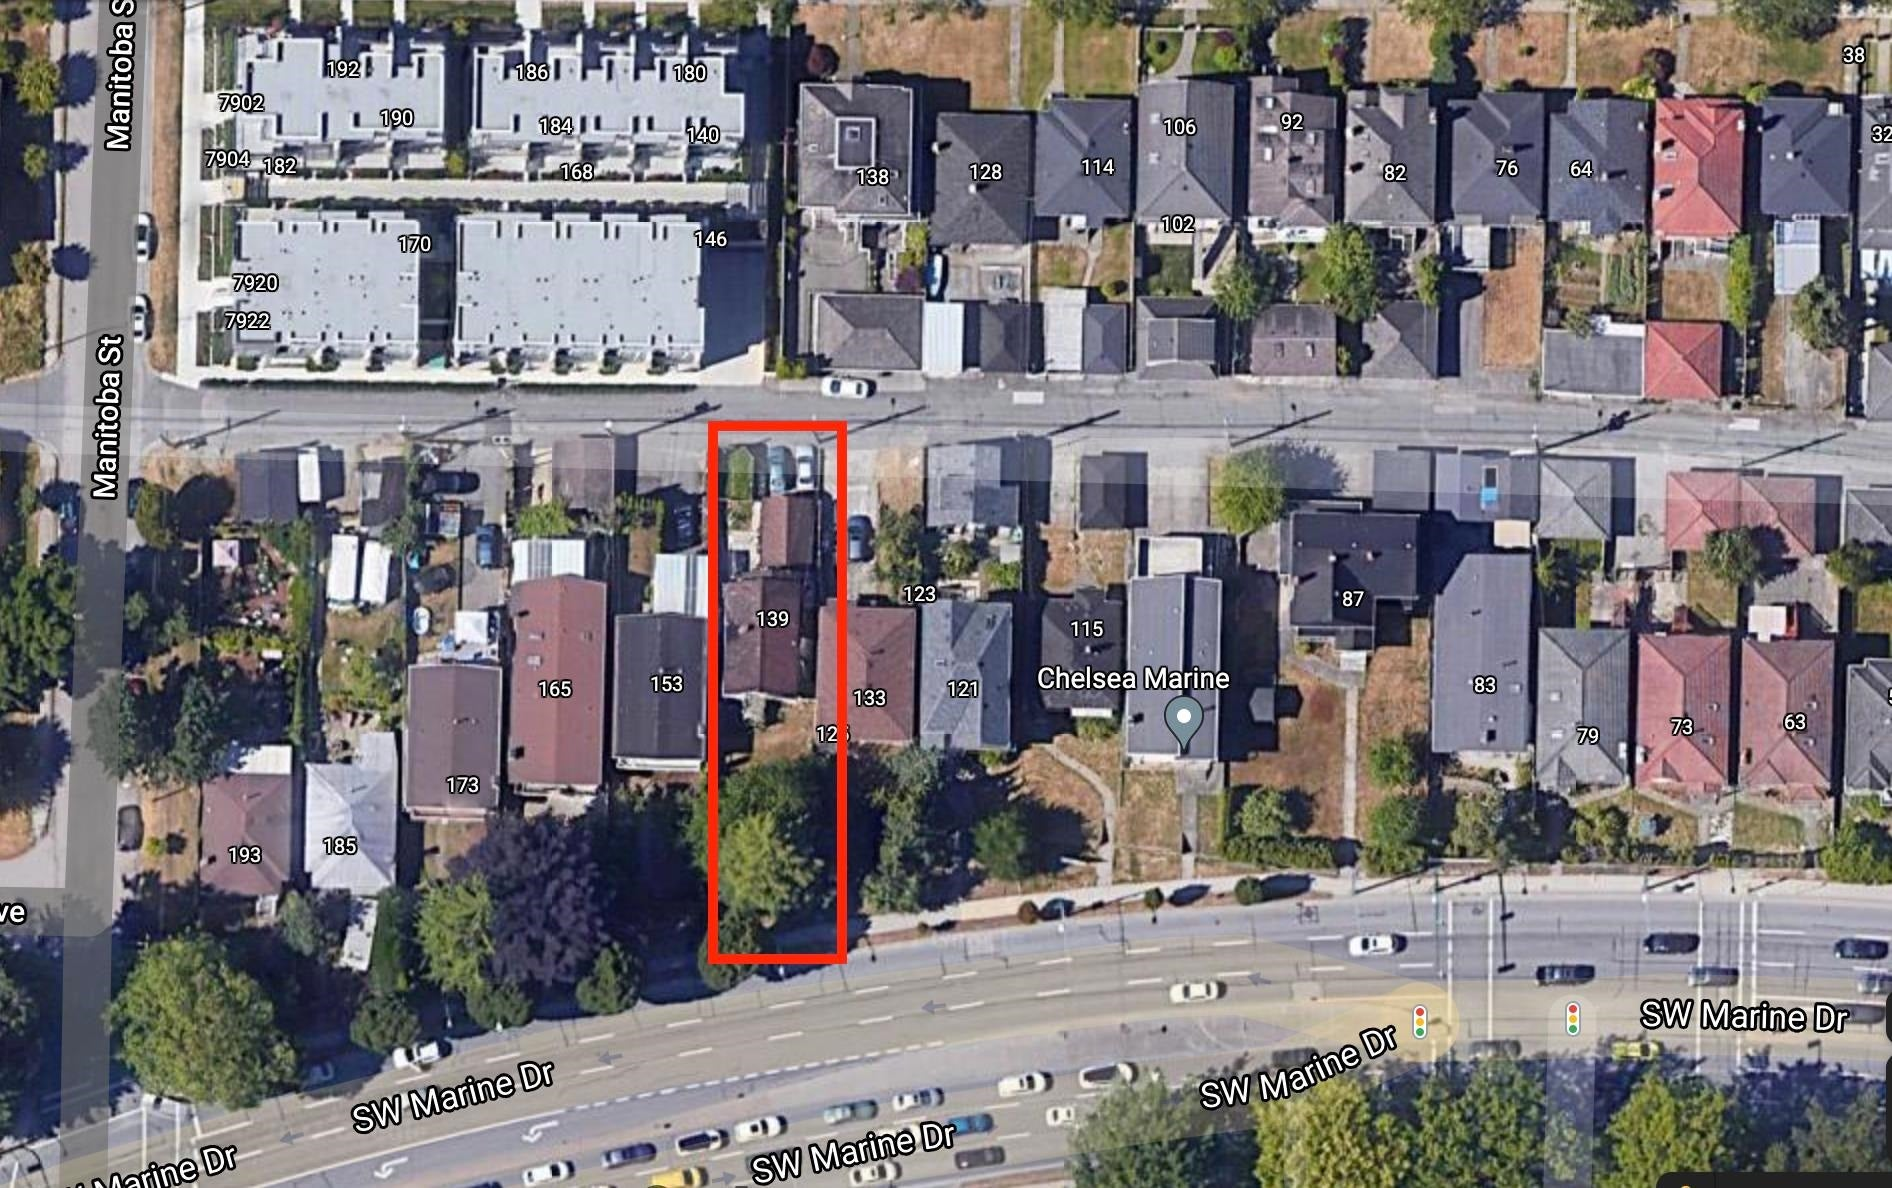 139 SW MARINE DRIVE - Marpole House/Single Family for sale, 4 Bedrooms (R2627439)